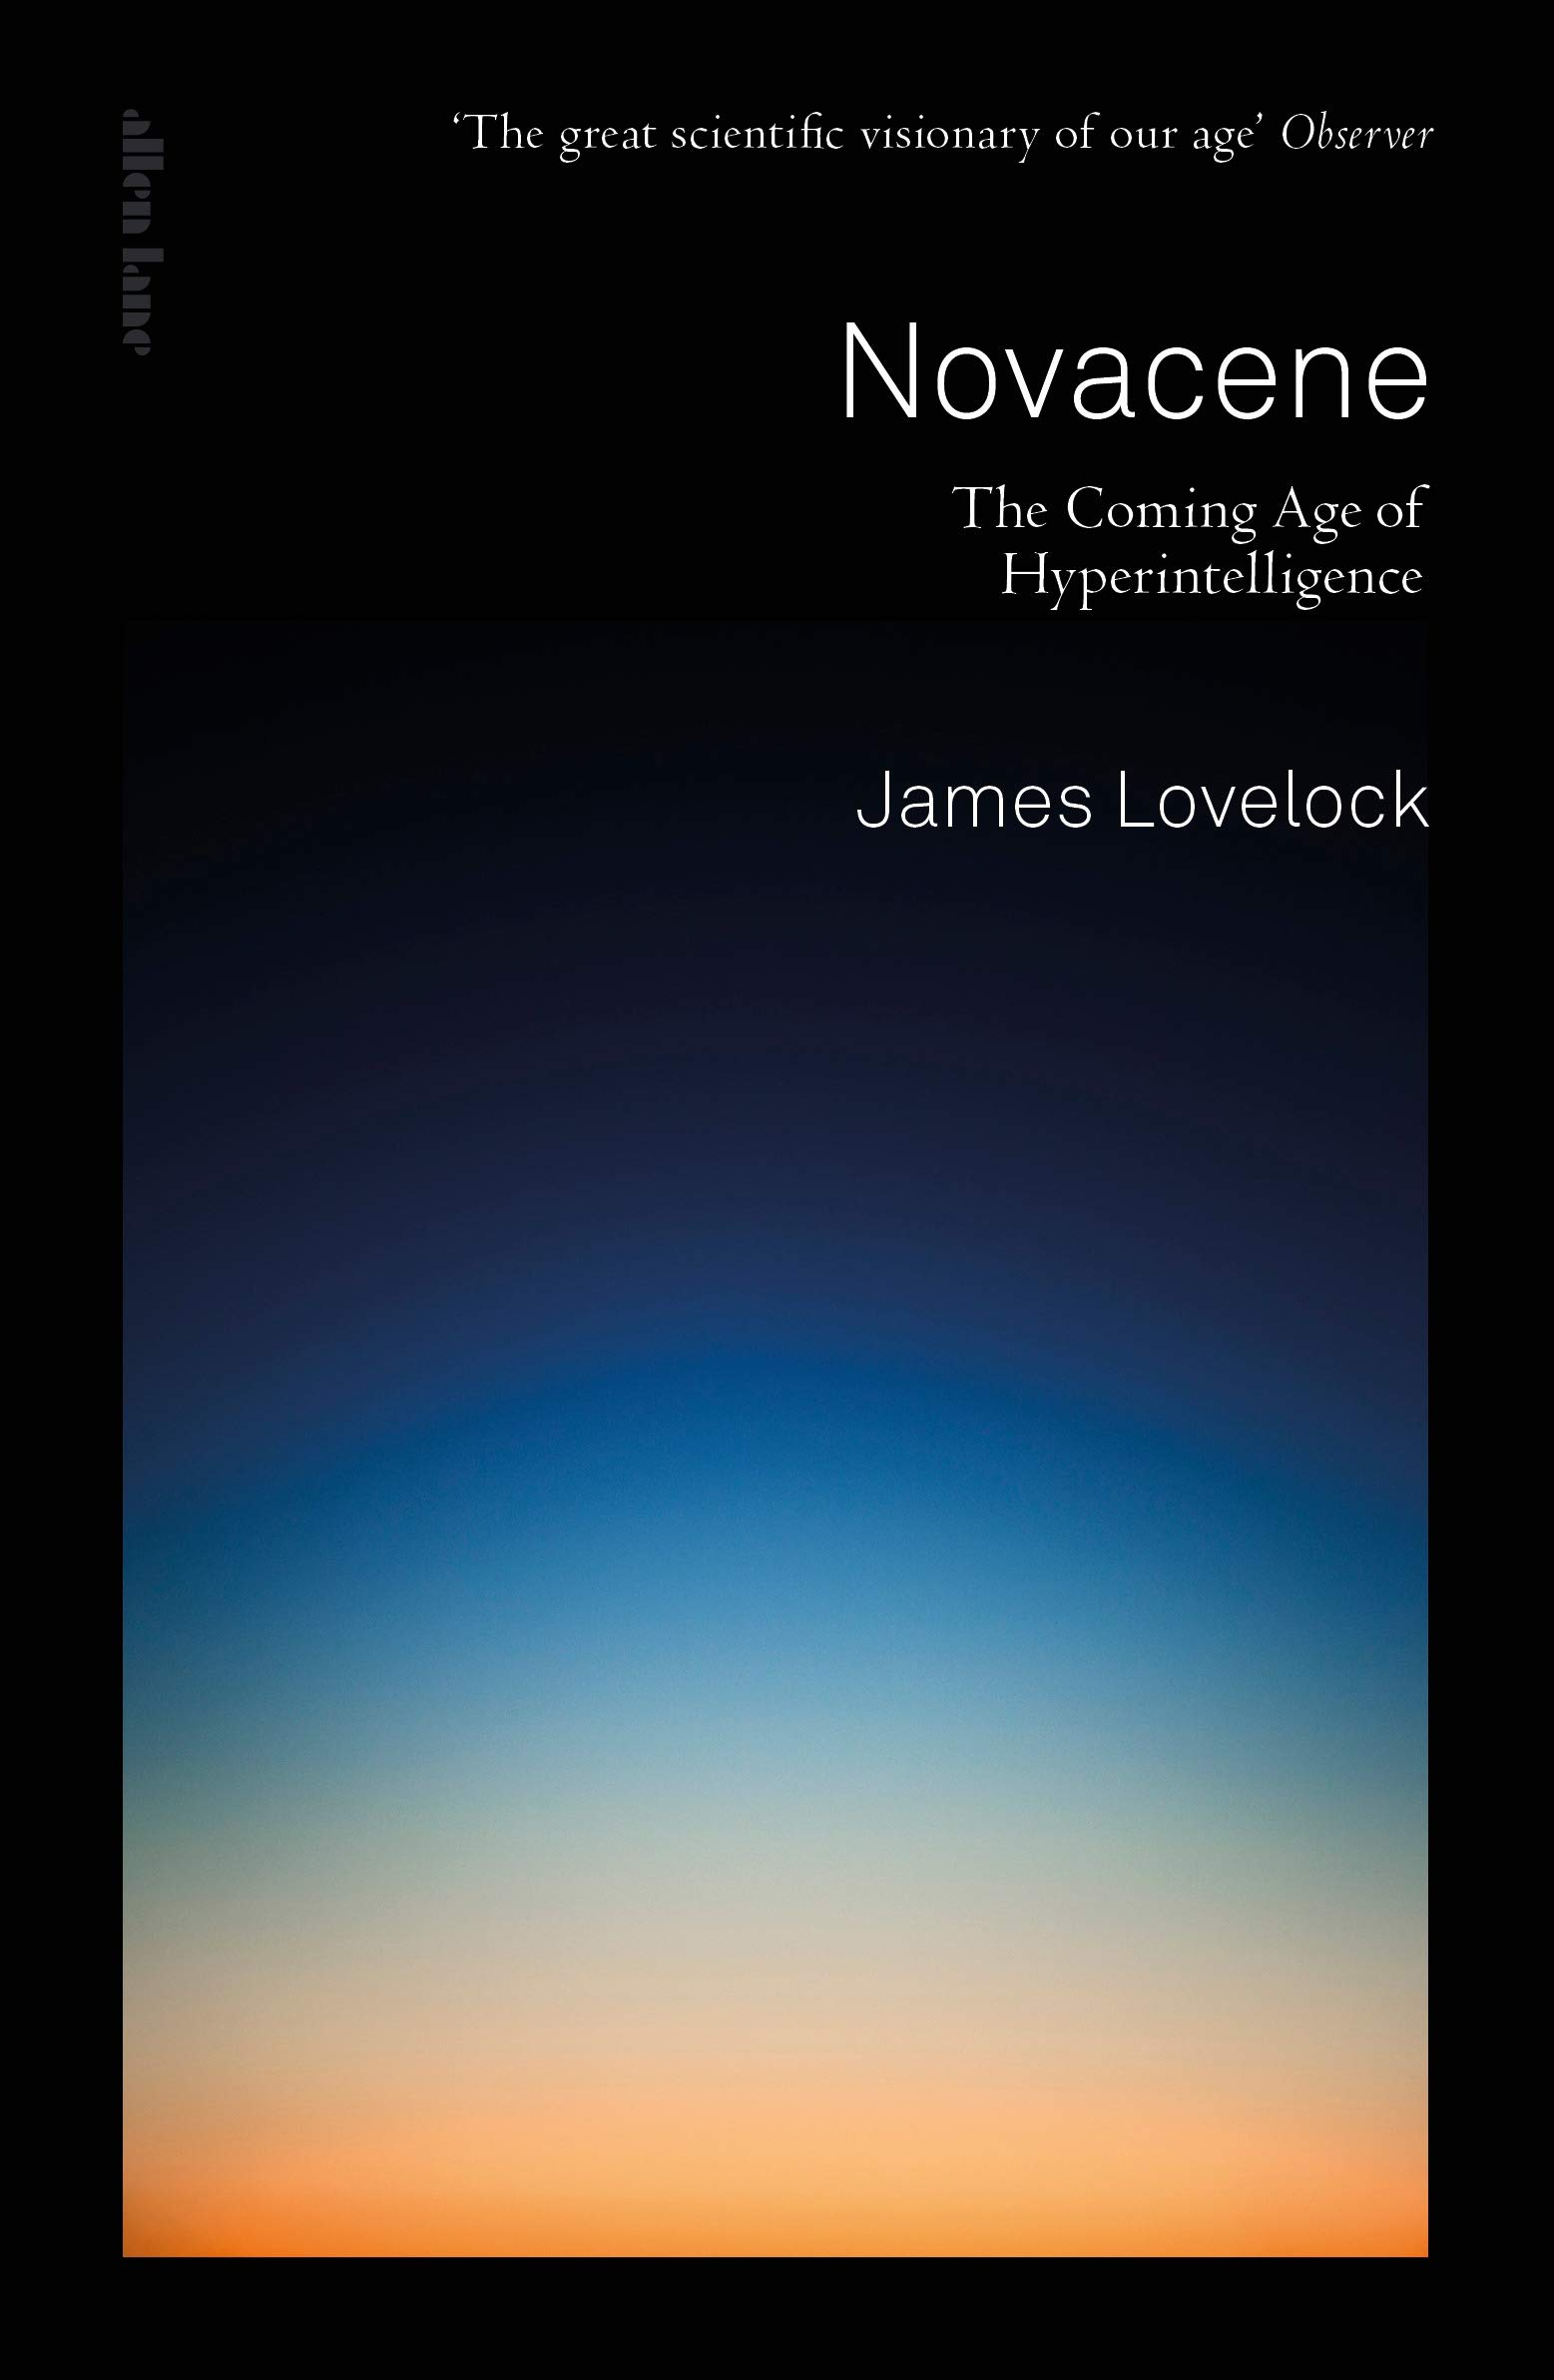 James Lovelock, The Coming Age of Hyperintelligence, Penguin Book UK, 2019